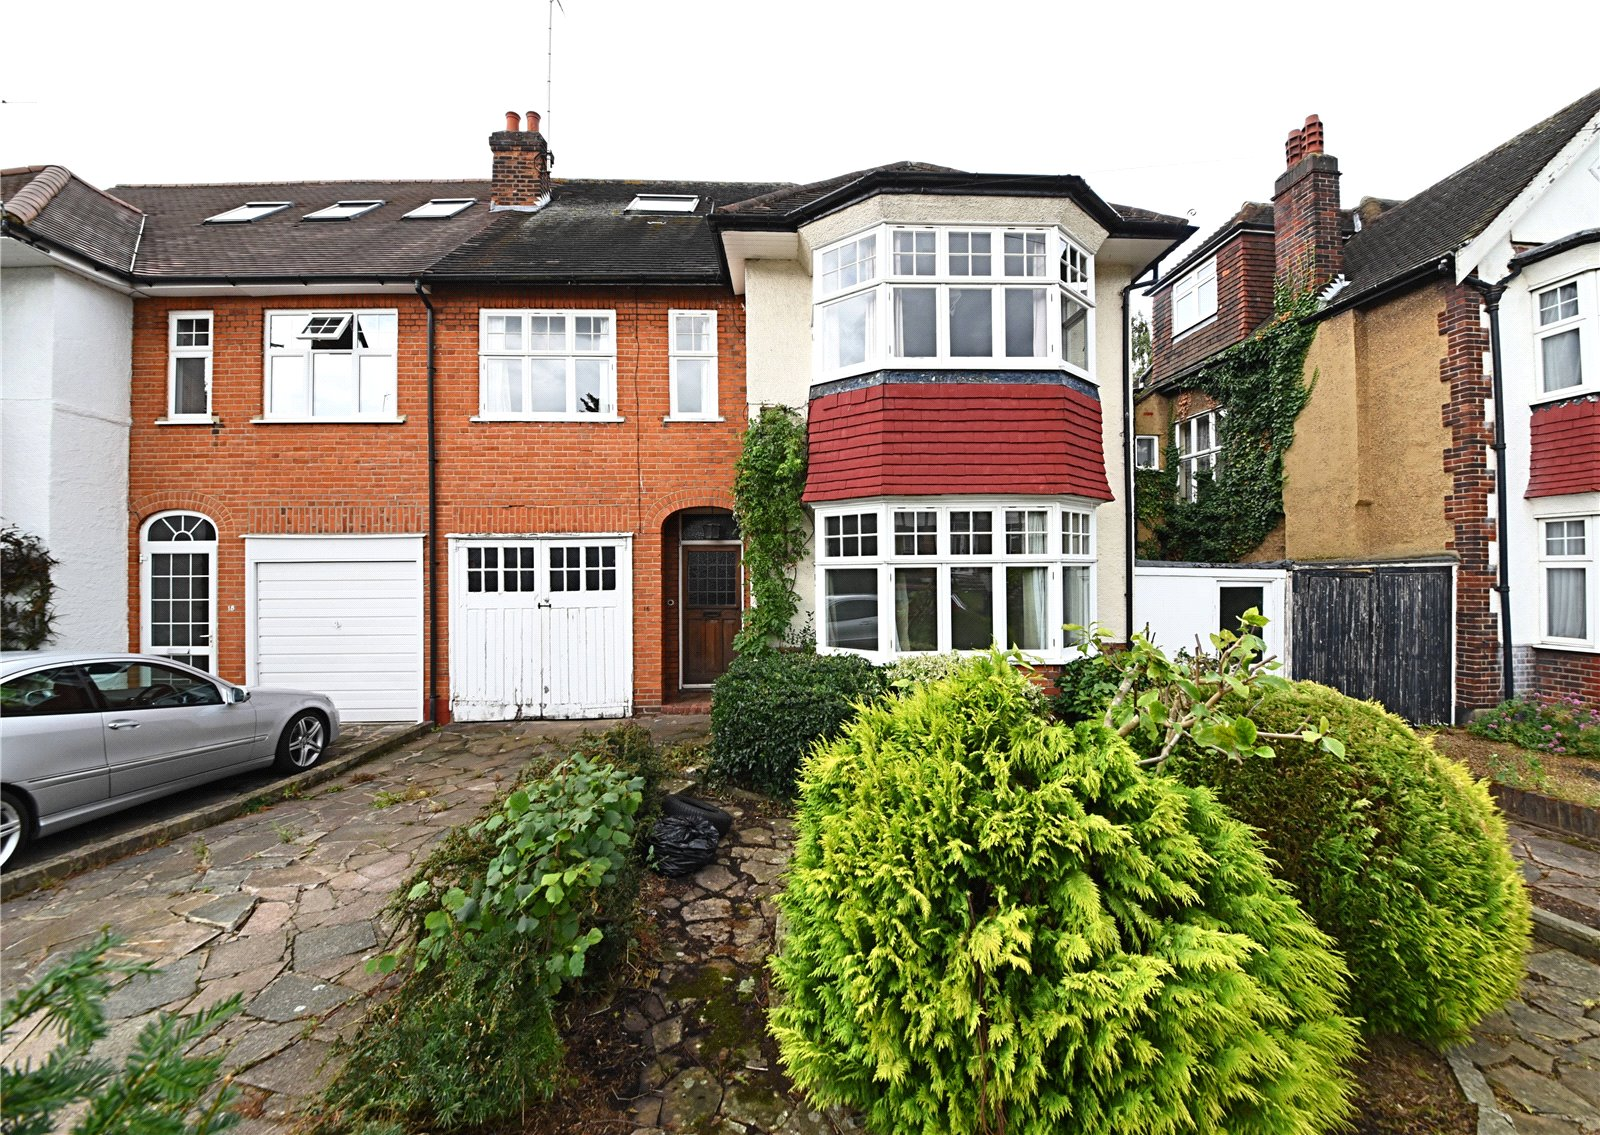 4 bed house for sale in Totteridge, N20 8QR 0